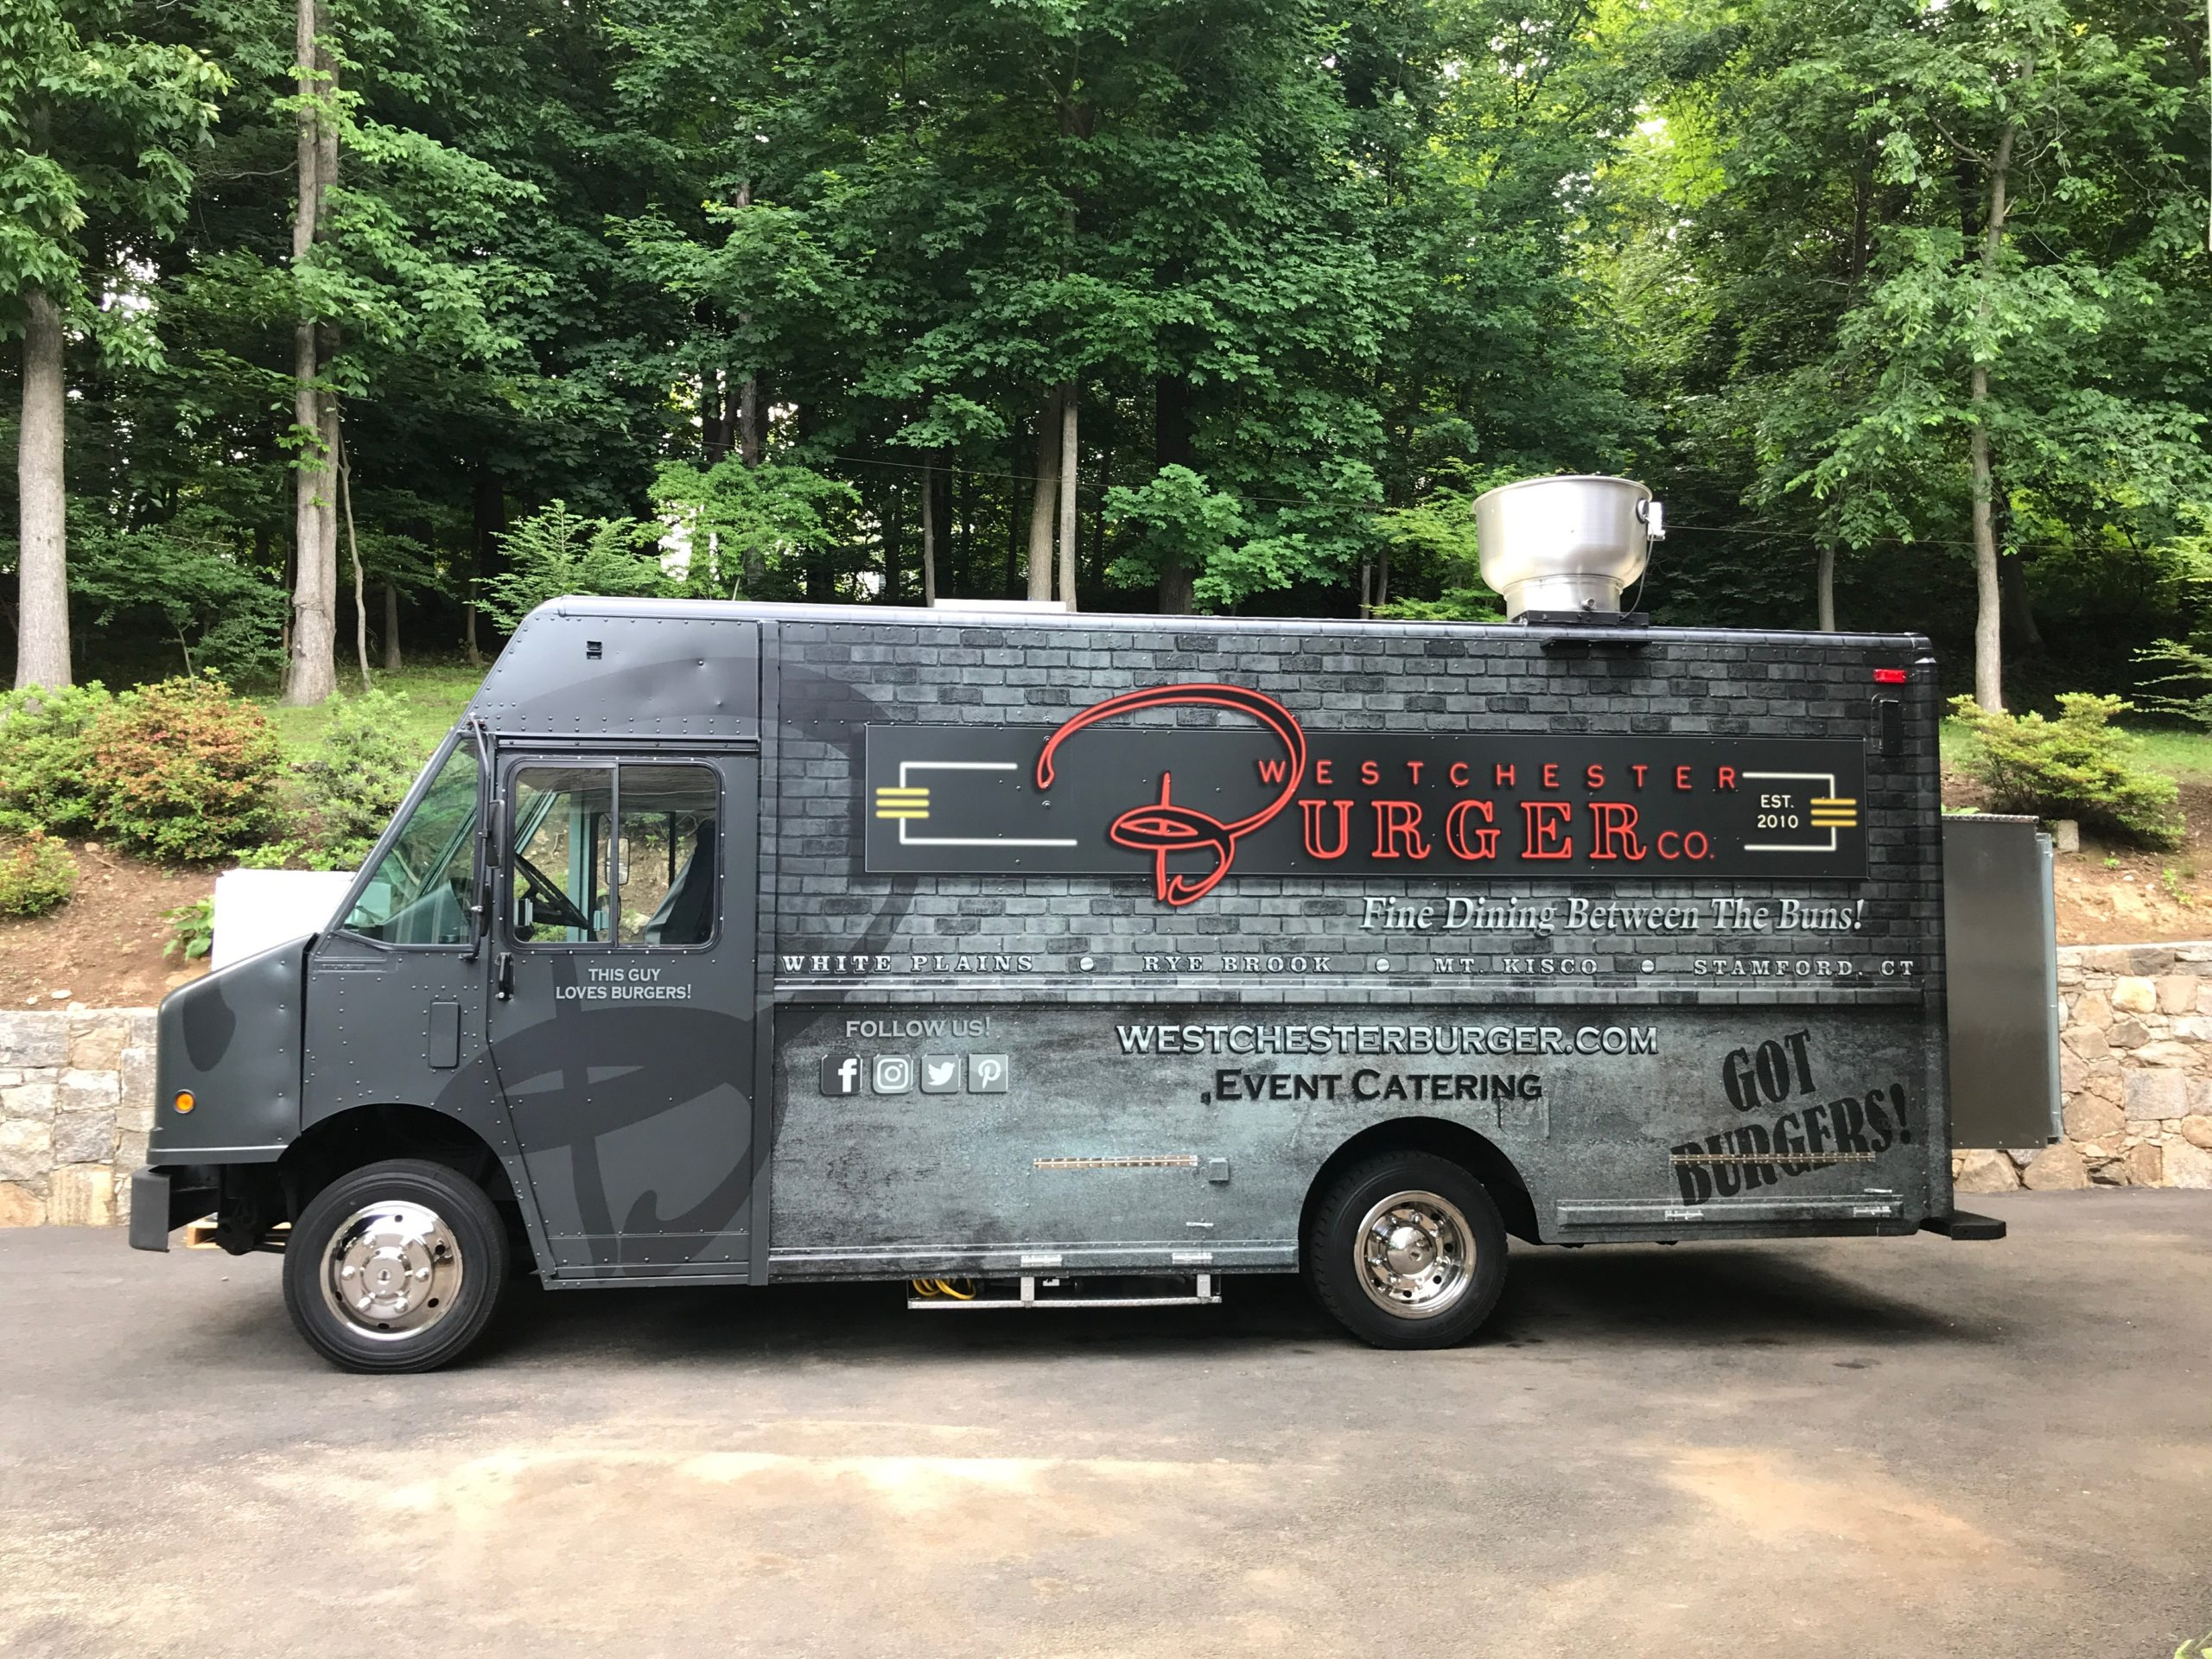 Westchester Burger Co. Food Truck Catering